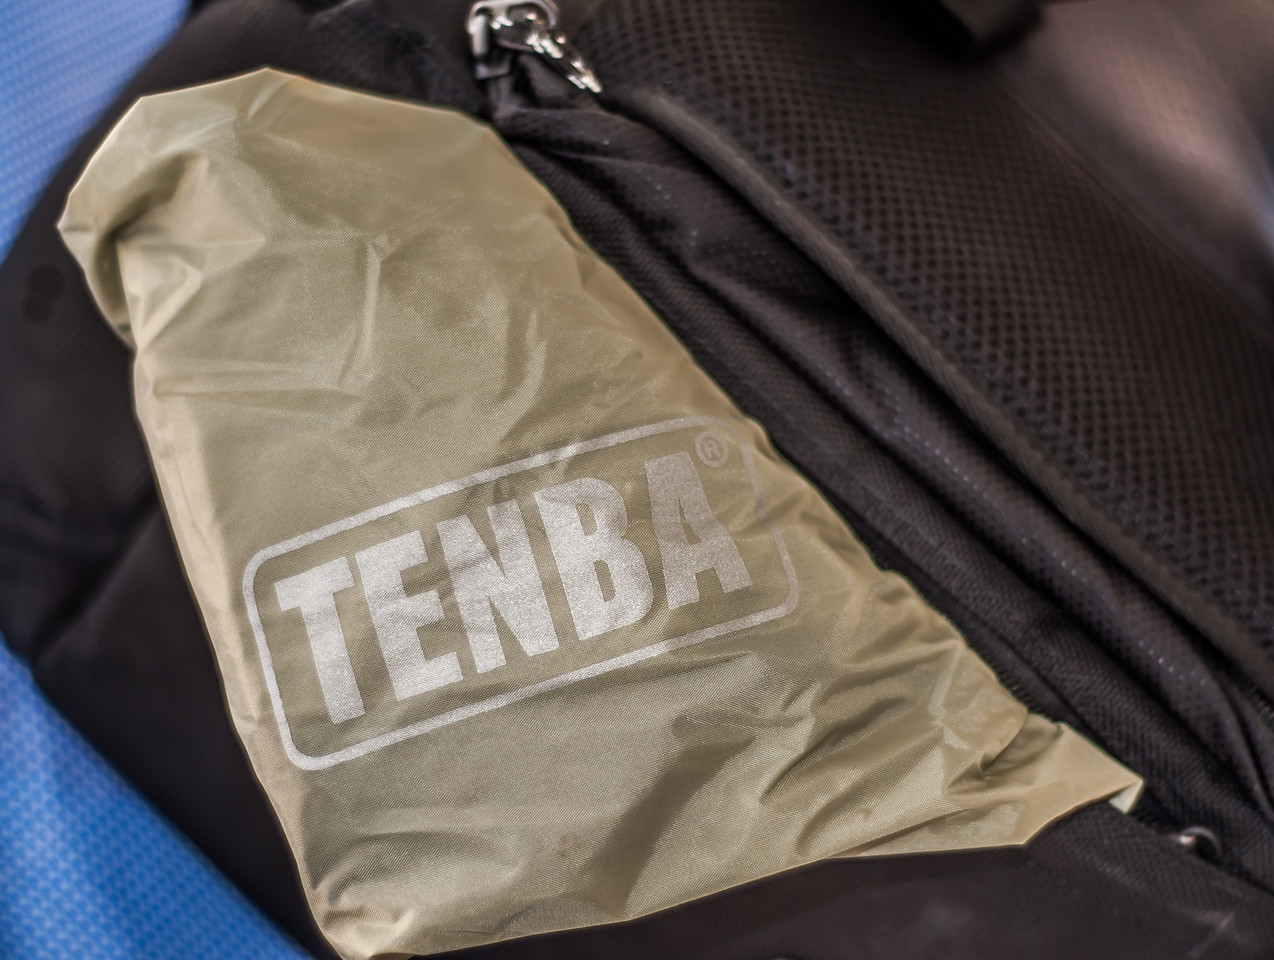 "<center> <br><br><a href=""http://www.tenba.com/Products/Shootout-Backpack-Medium-Black.aspx"" target=""_blank"">Tenba Shootout Backpack, Medium Black  <p>Tenba includes a water repellent rain jacket located in a zippered compartment at the bottom of the bag. Convenient if you're caught in a torrential down poor . </p></a> </center>"